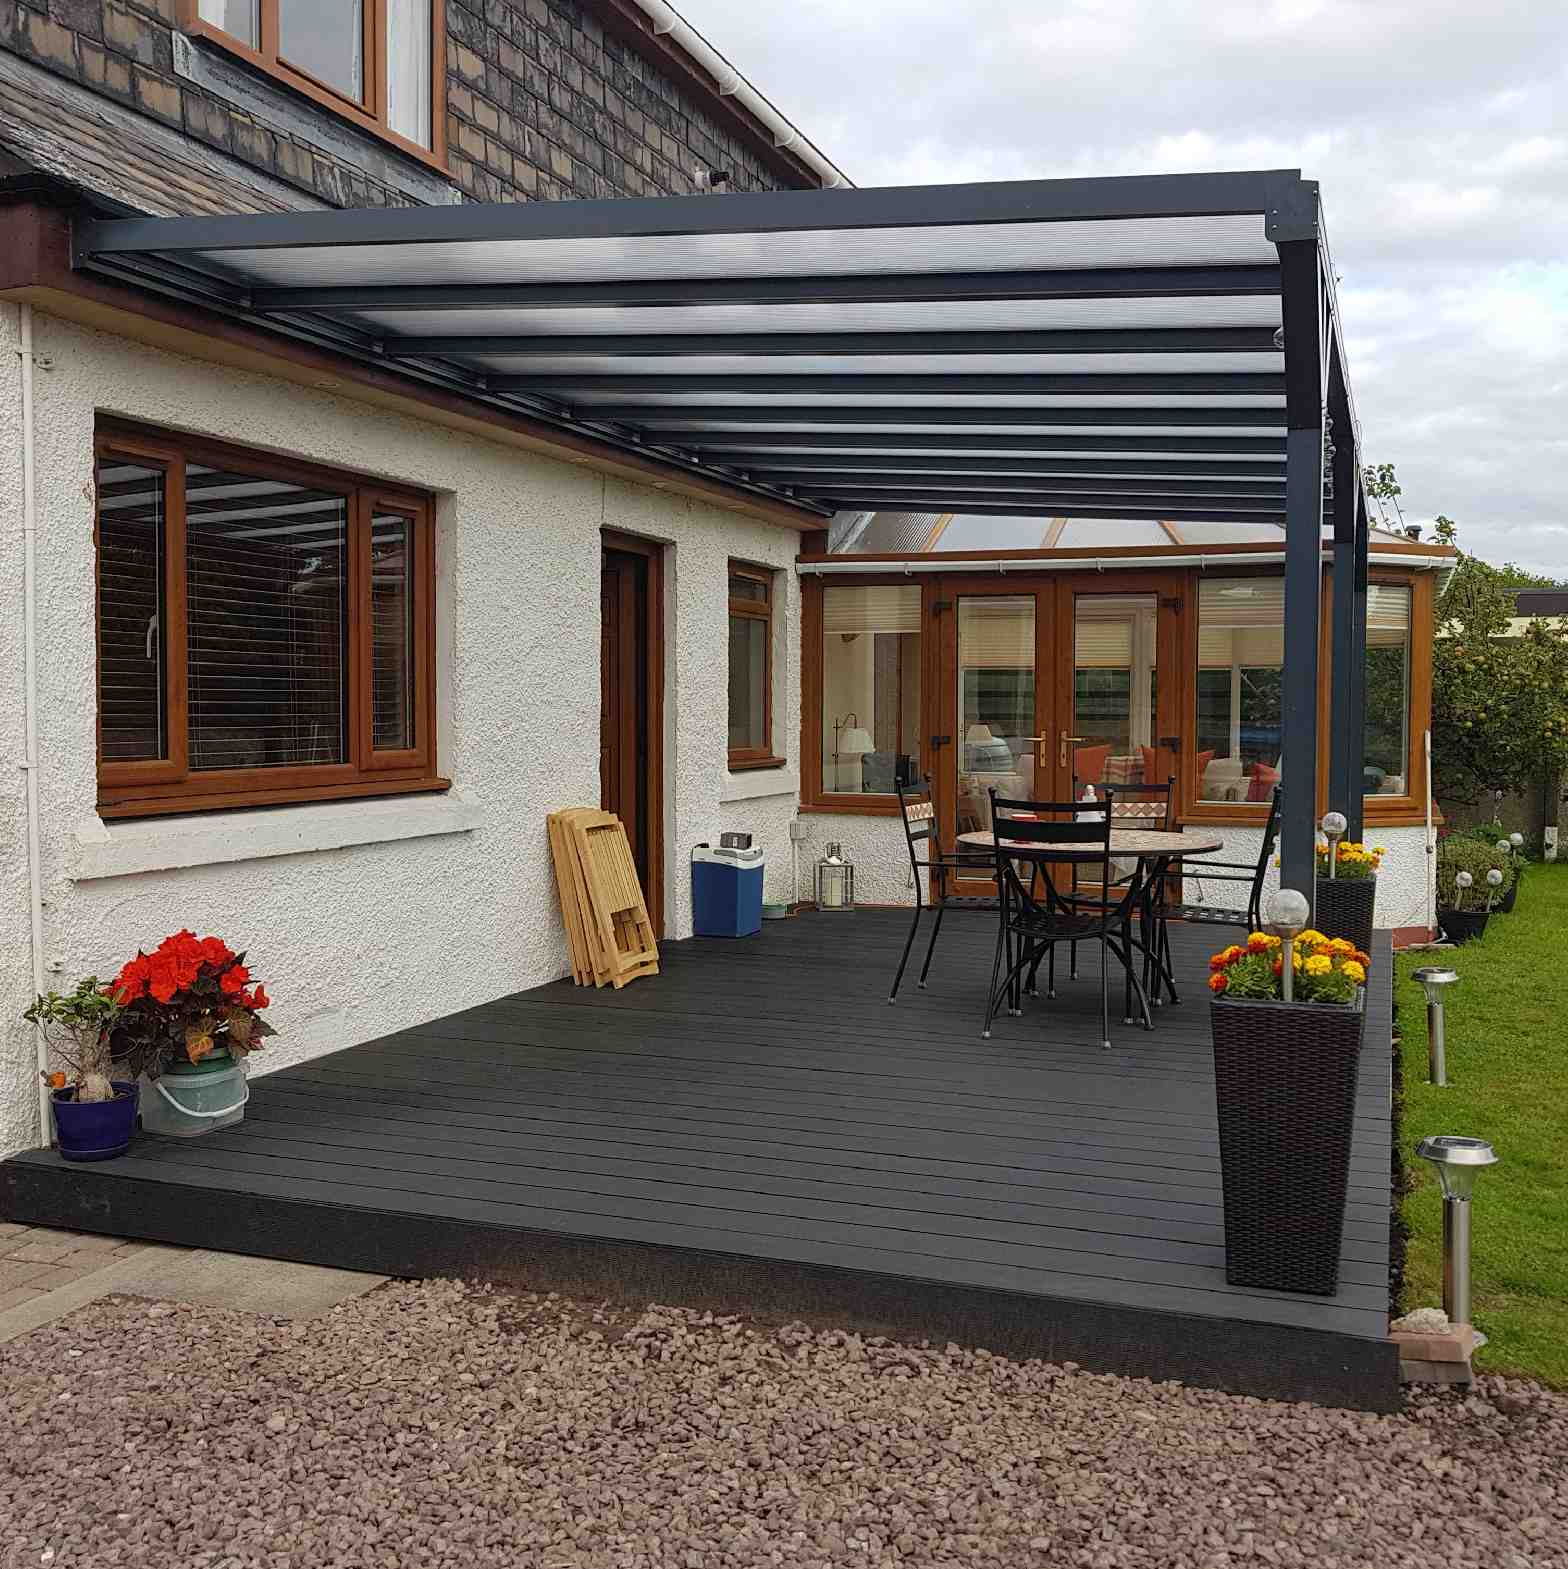 Buy Omega Verandah, Anthracite Grey, 16mm Polycarbonate Glazing - 7.0m (W) x 4.0m (P), (4) Supporting Posts online today